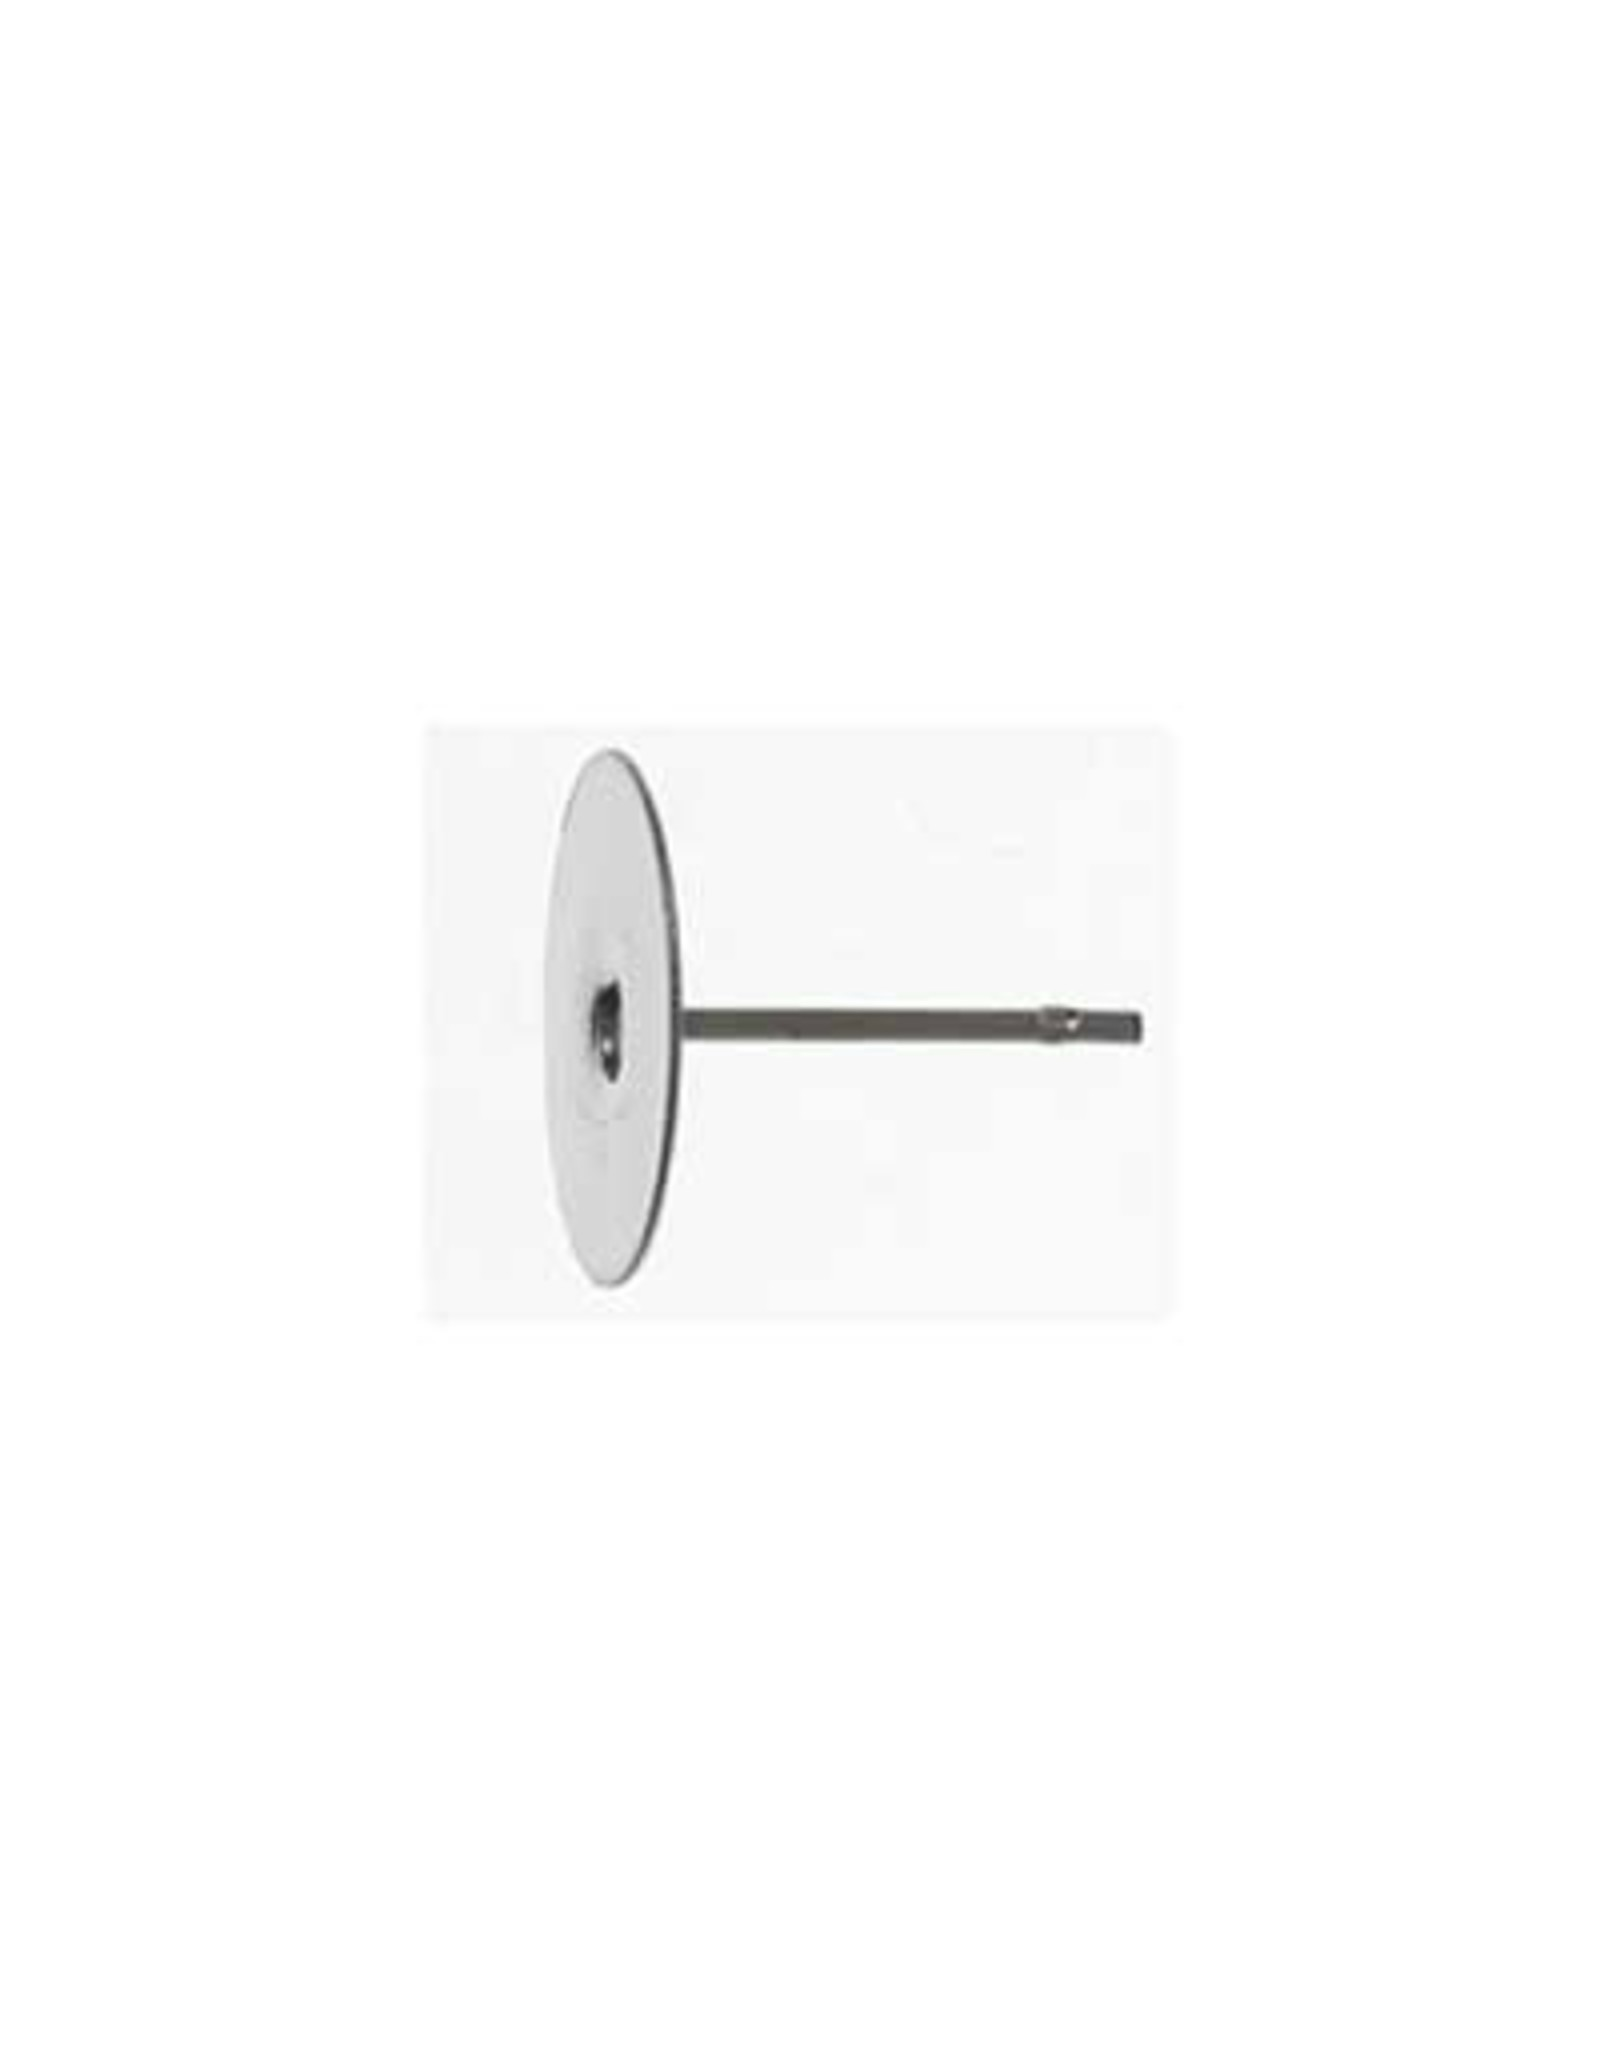 Ear Stud 10mm Flat Nickel Colour  NF x100